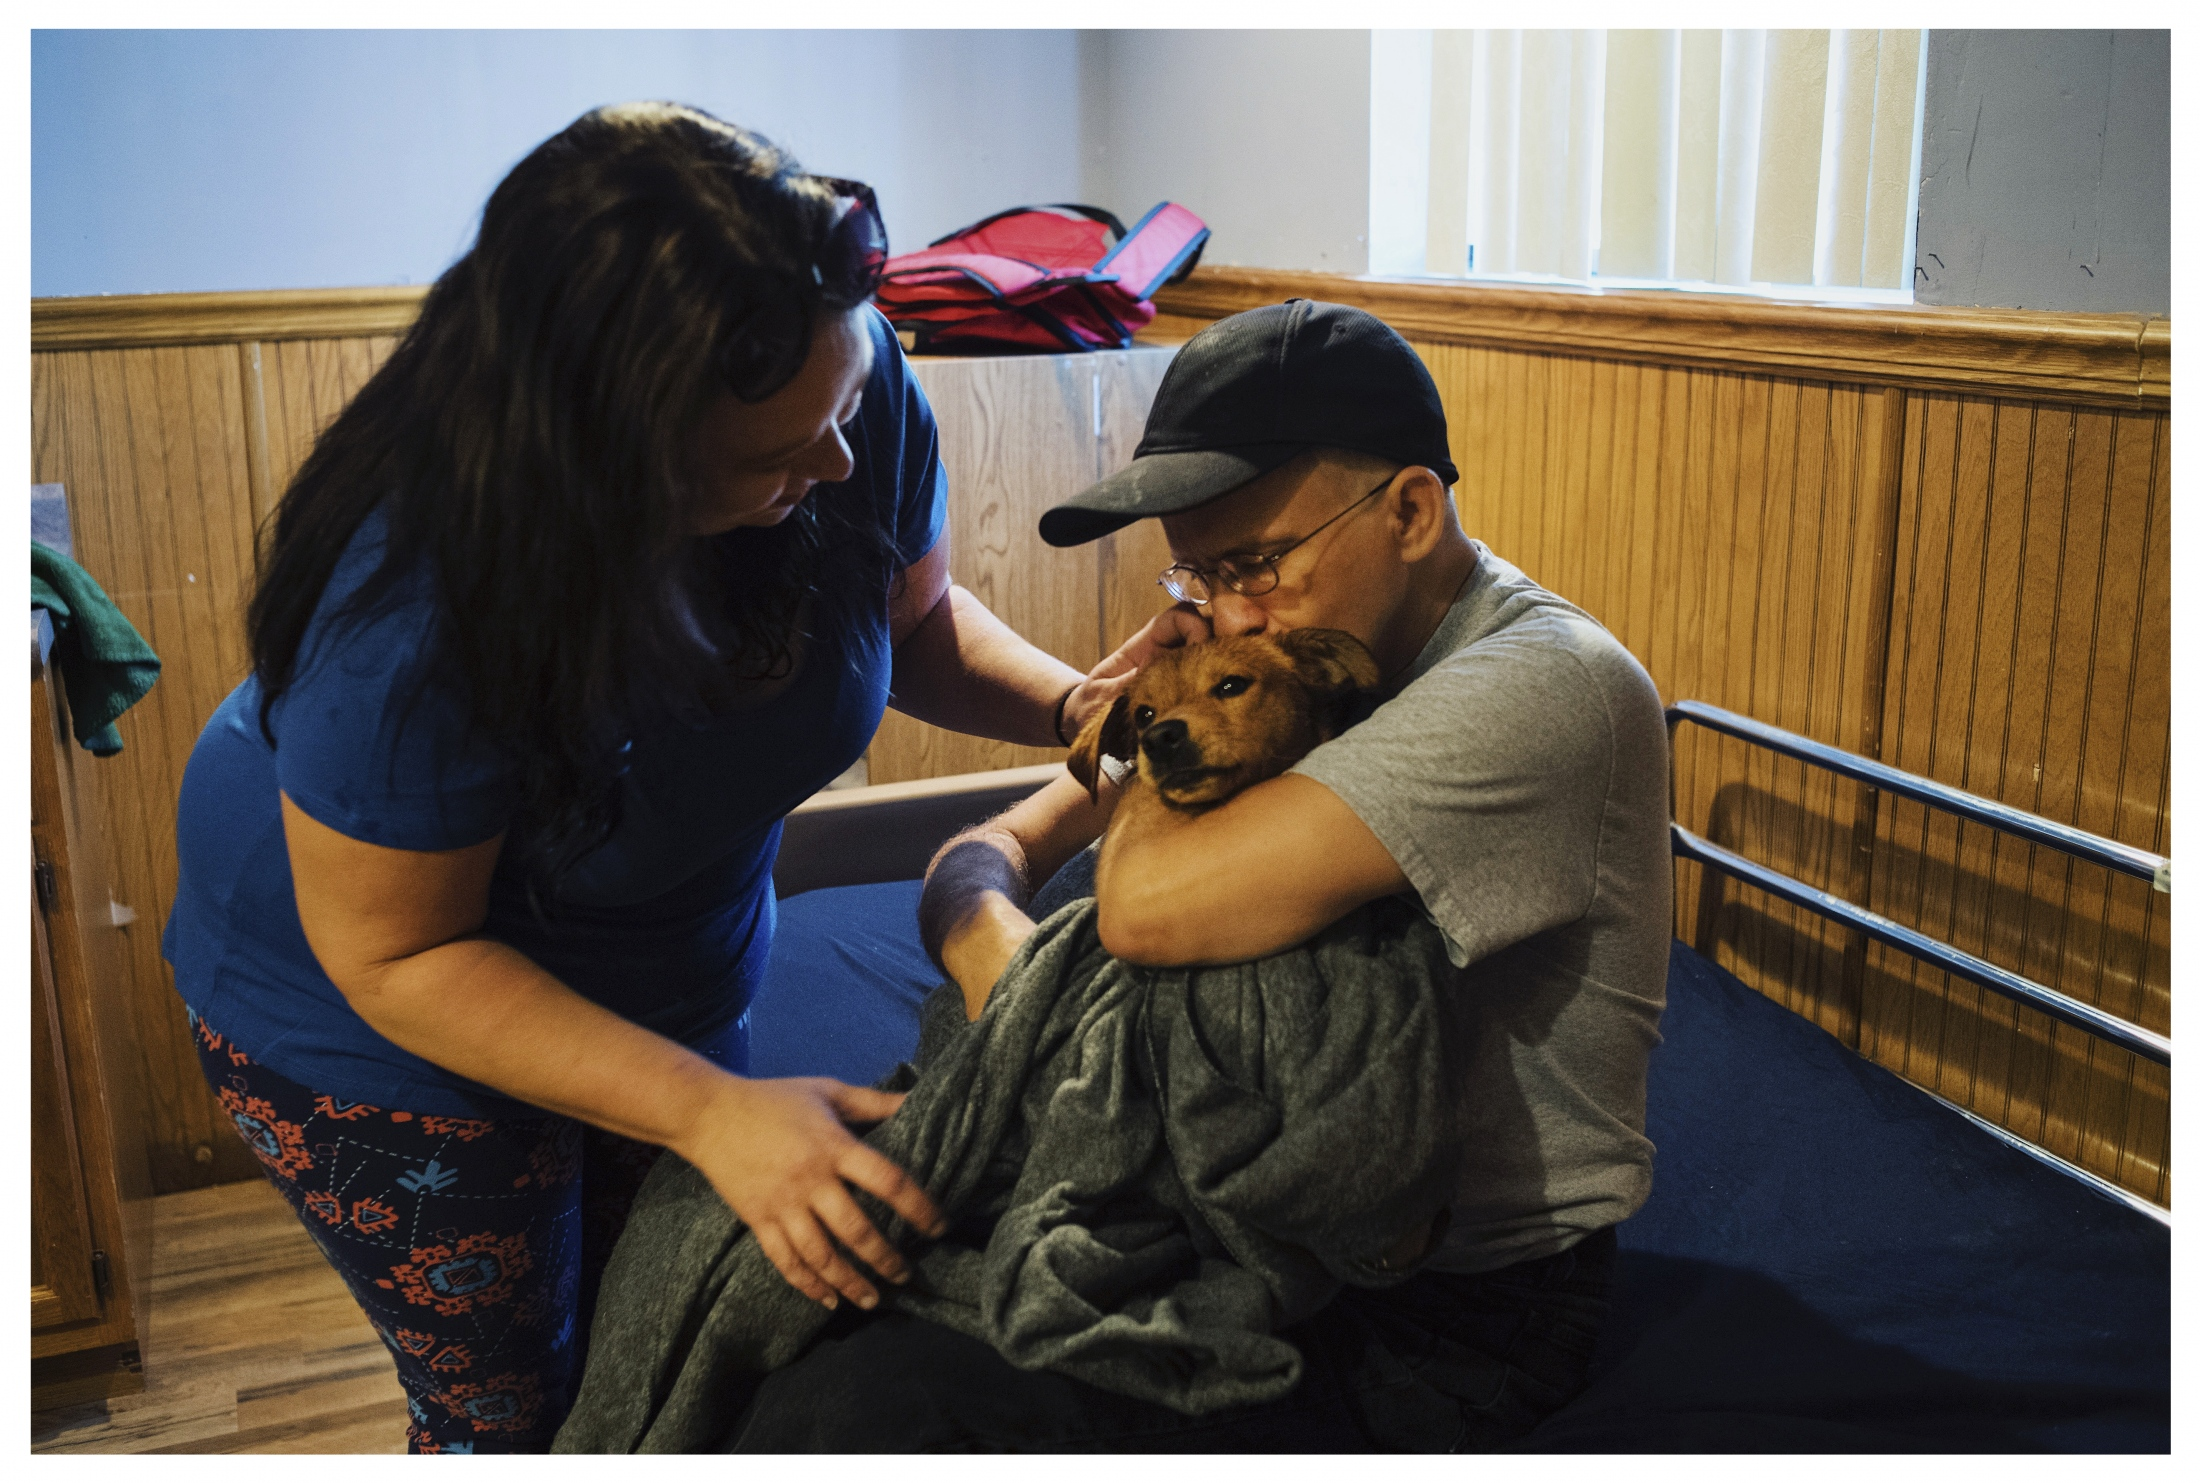 Tony embraces his service dog Bertram before he is sent off to Buffalo, New York for training. The two won't see each other again until Christmas. Service animals such as Bertram help individuals with disability gain independence.